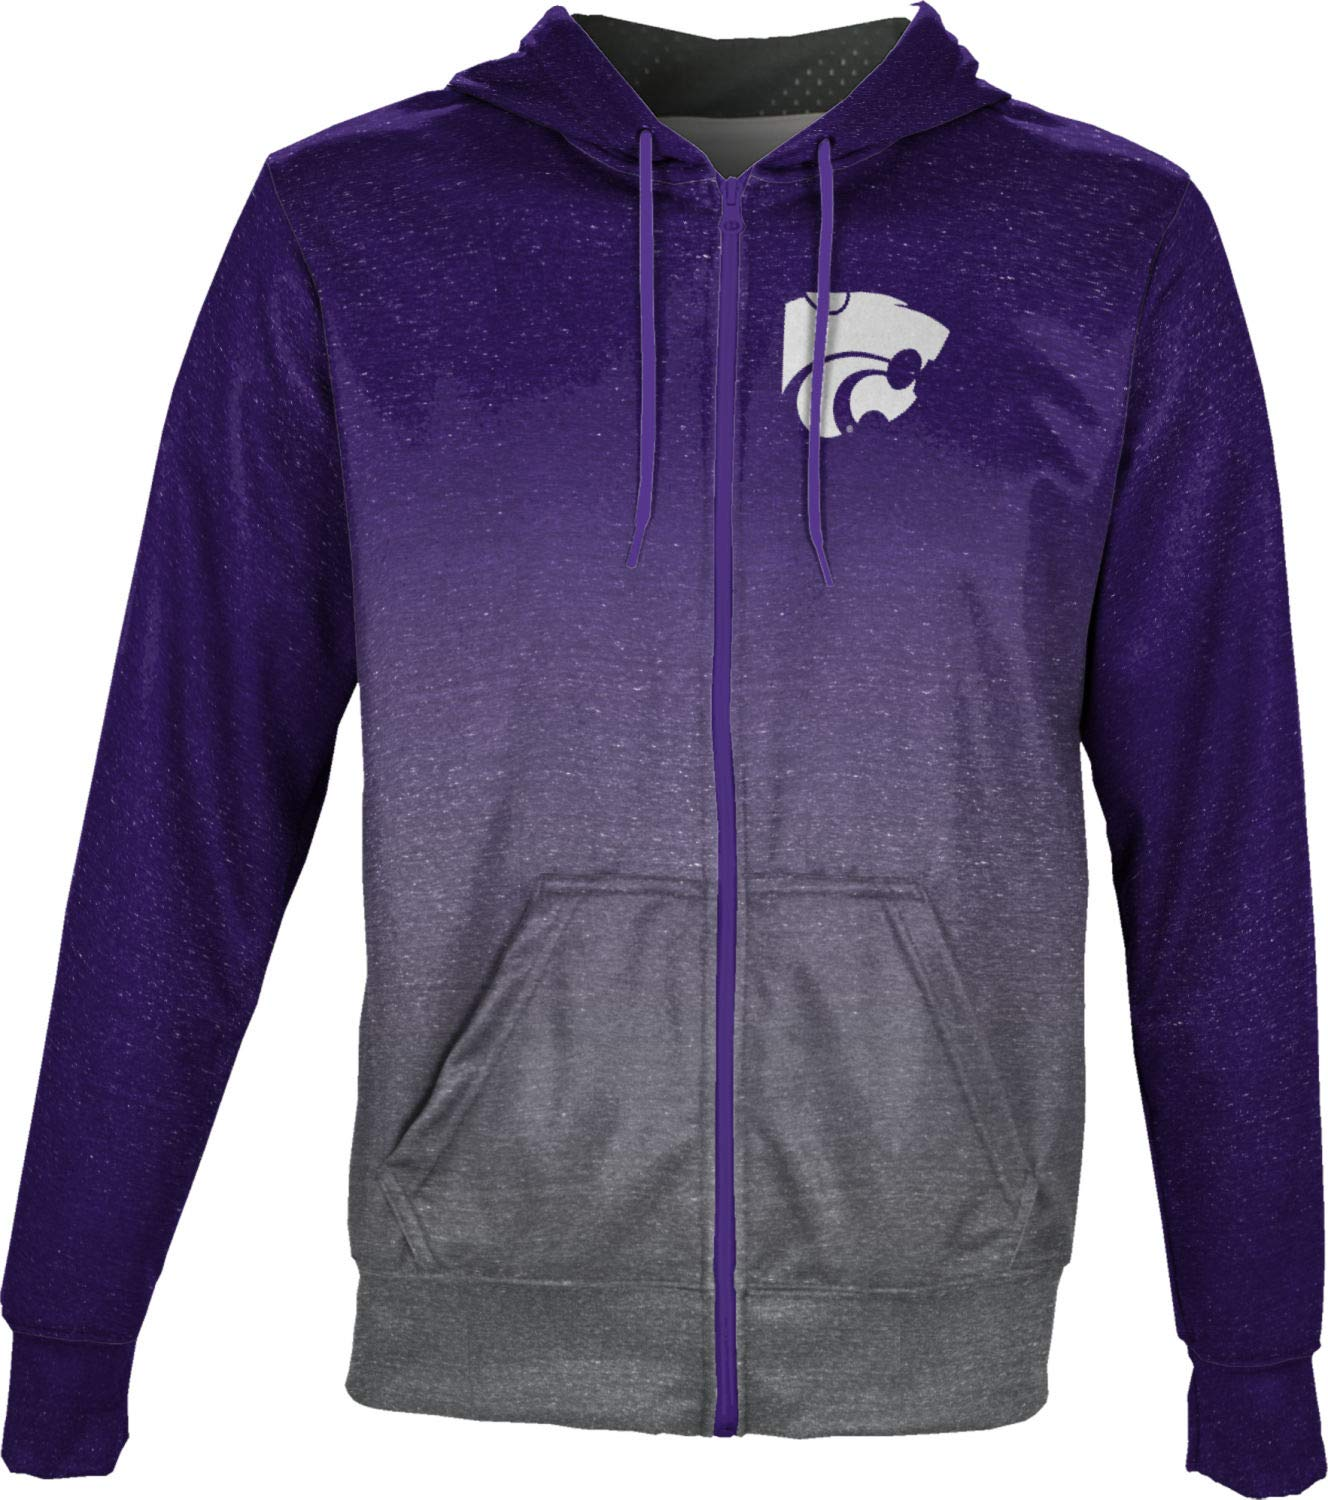 School Spirit Sweatshirt ProSphere University of Northwestern Ohio Girls Zipper Hoodie Letterman